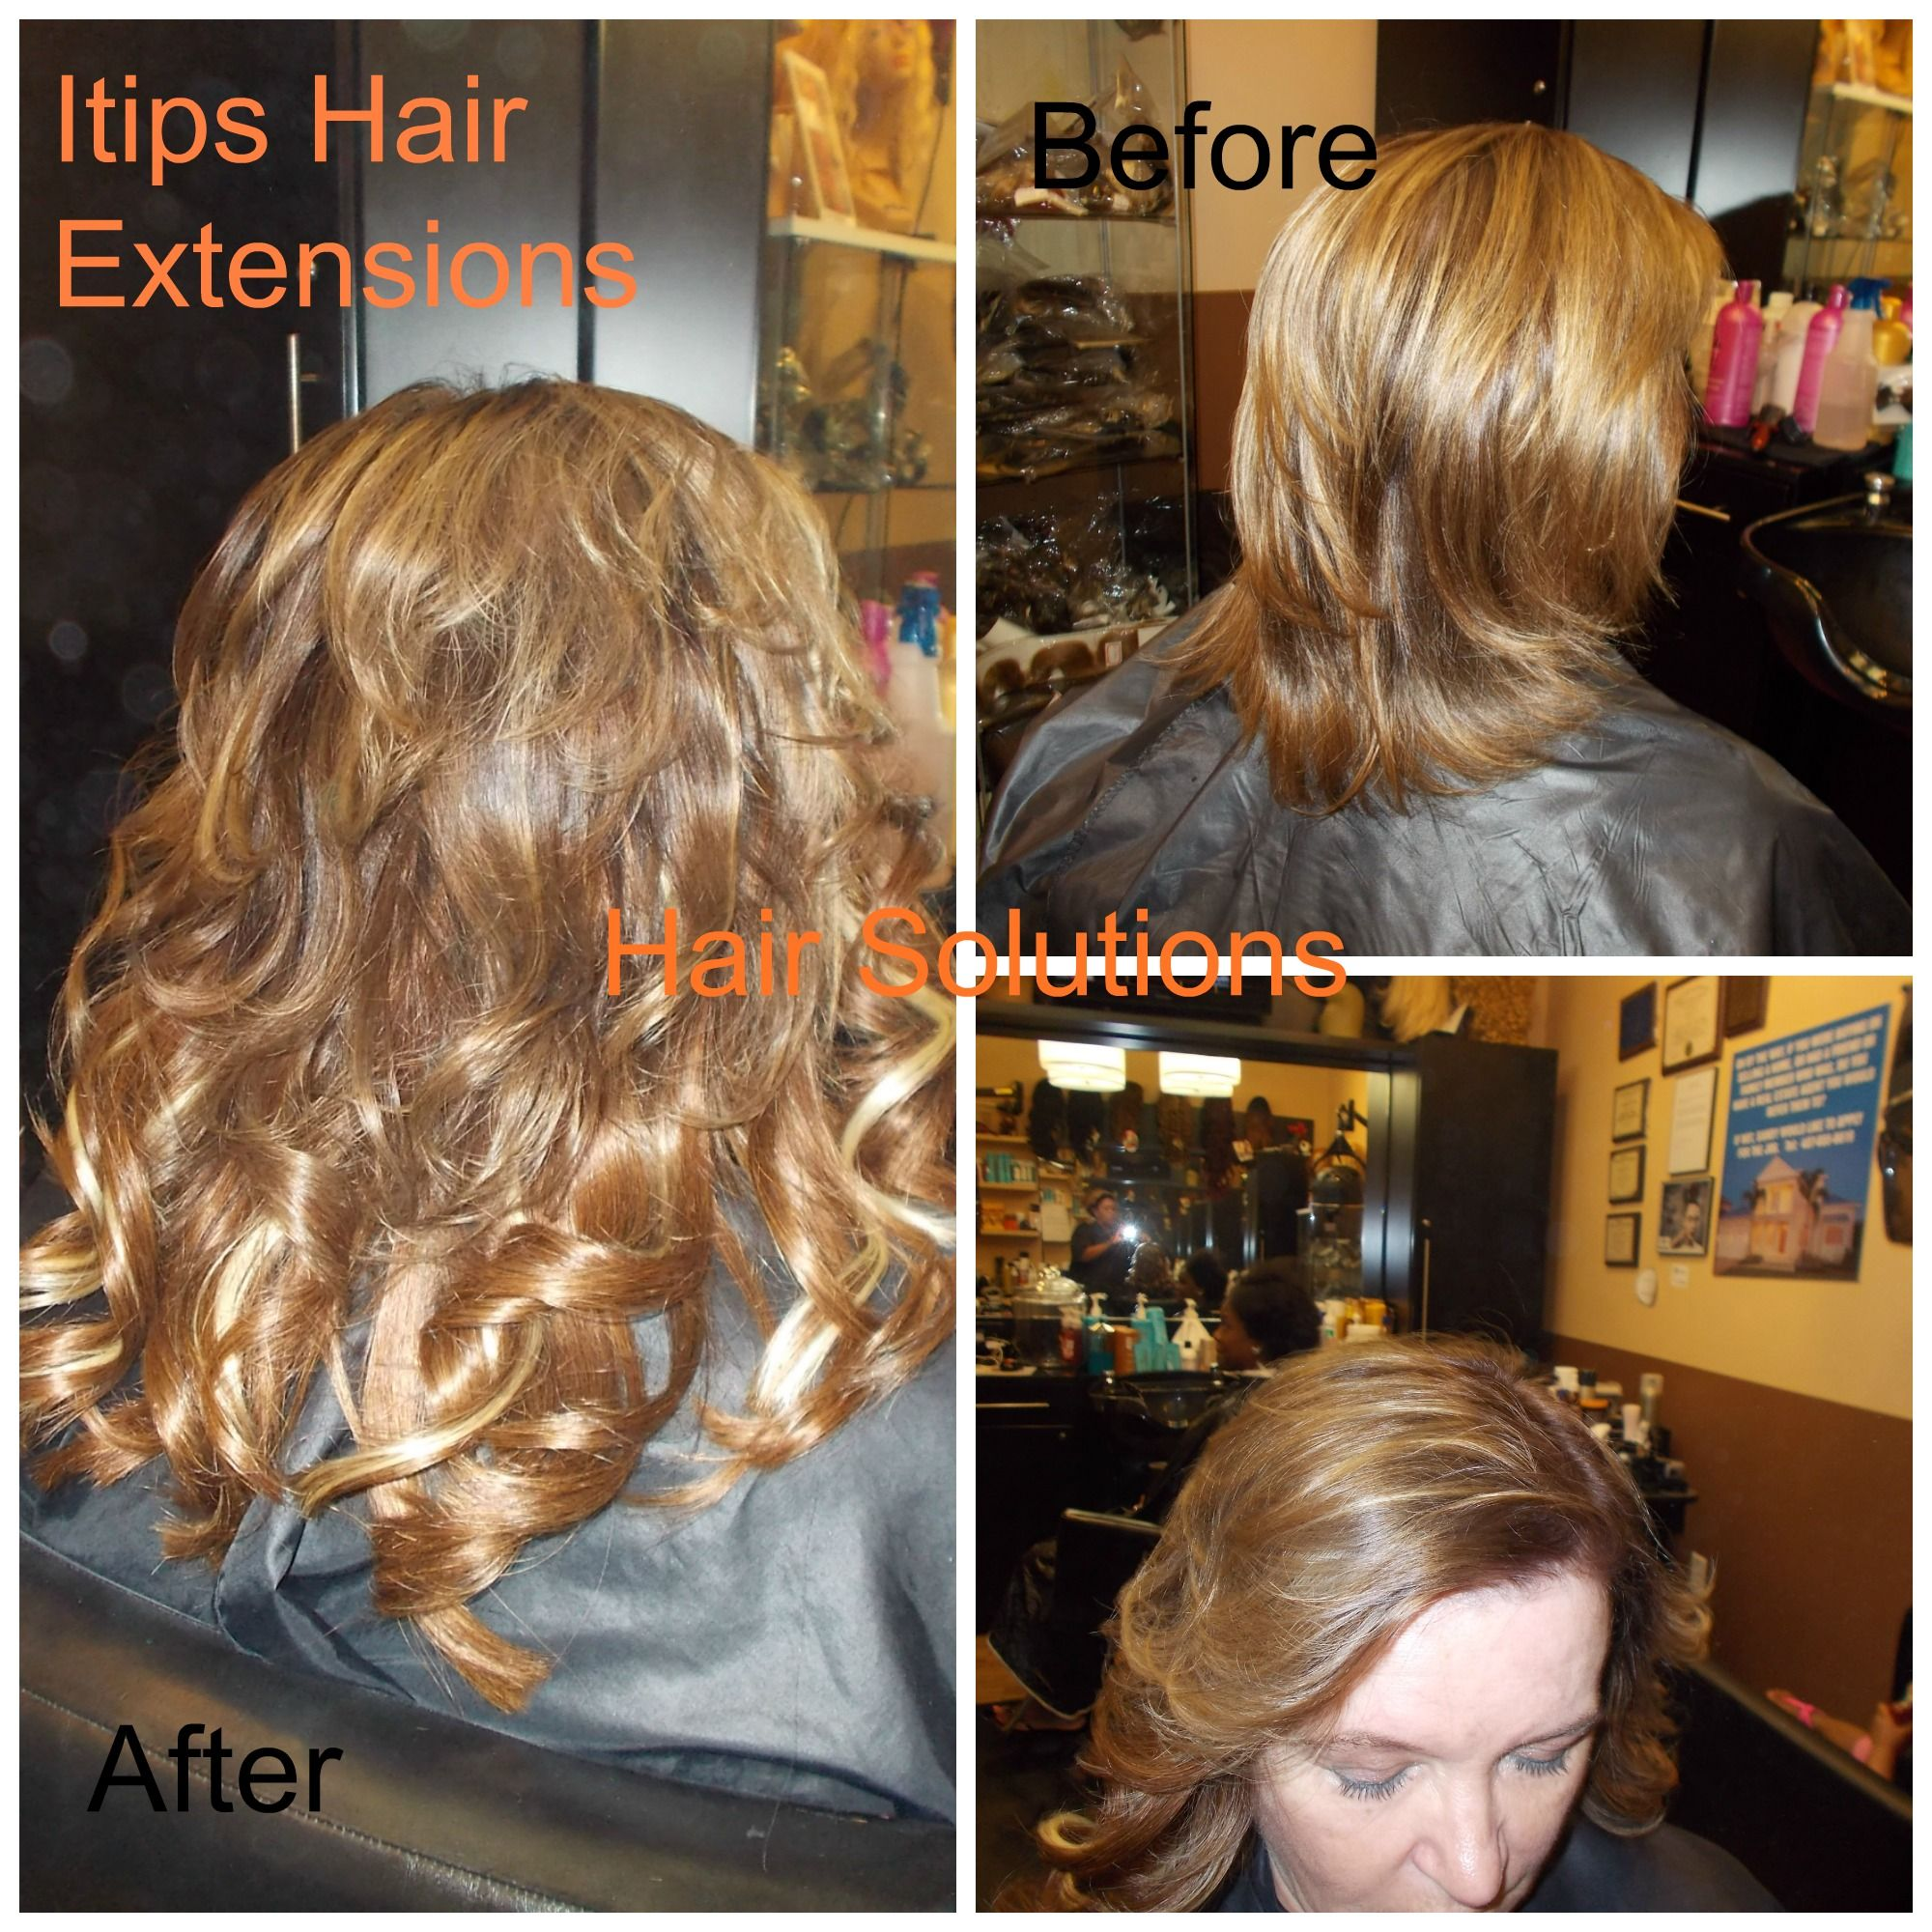 Itips Hair Extensions Done With Peruvian Straight Hair In Grade 8a